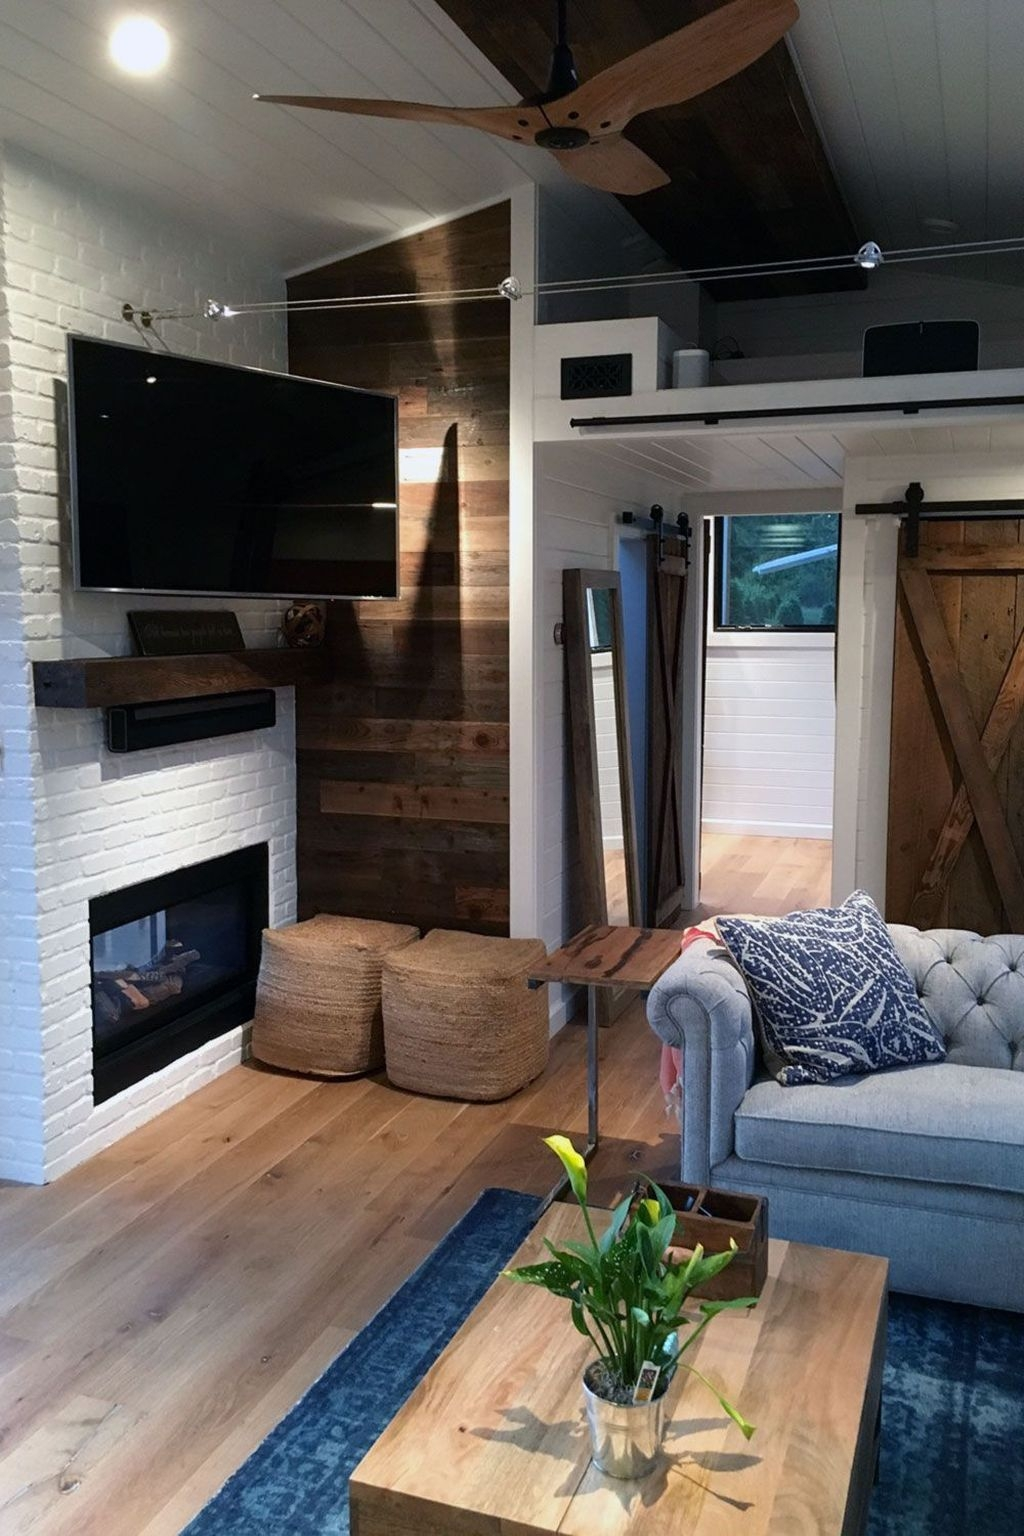 Awesome Fireplace Design Ideas For Small Houses 16